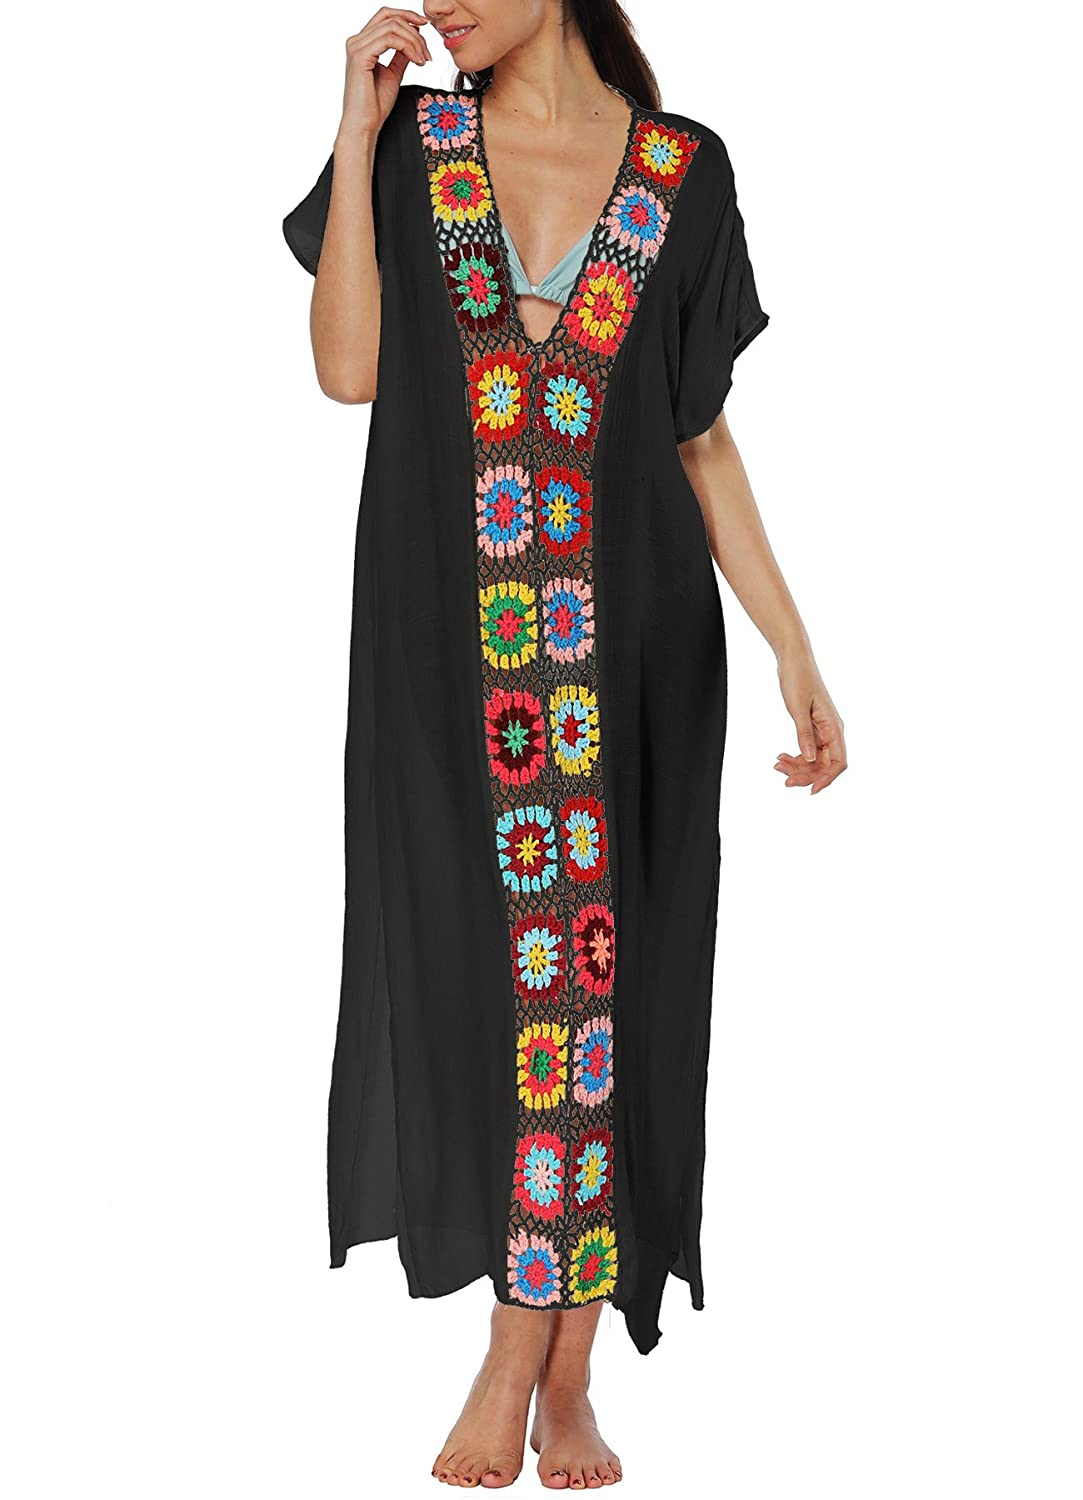 1bbf2335e0 Sexy Bamboo cotton Swimsuit Cover Ups is a must-have item for your Summer  vacation. LOVELY FIT: You'll love the airy, flowy fit of our ladies' kaftans  that ...